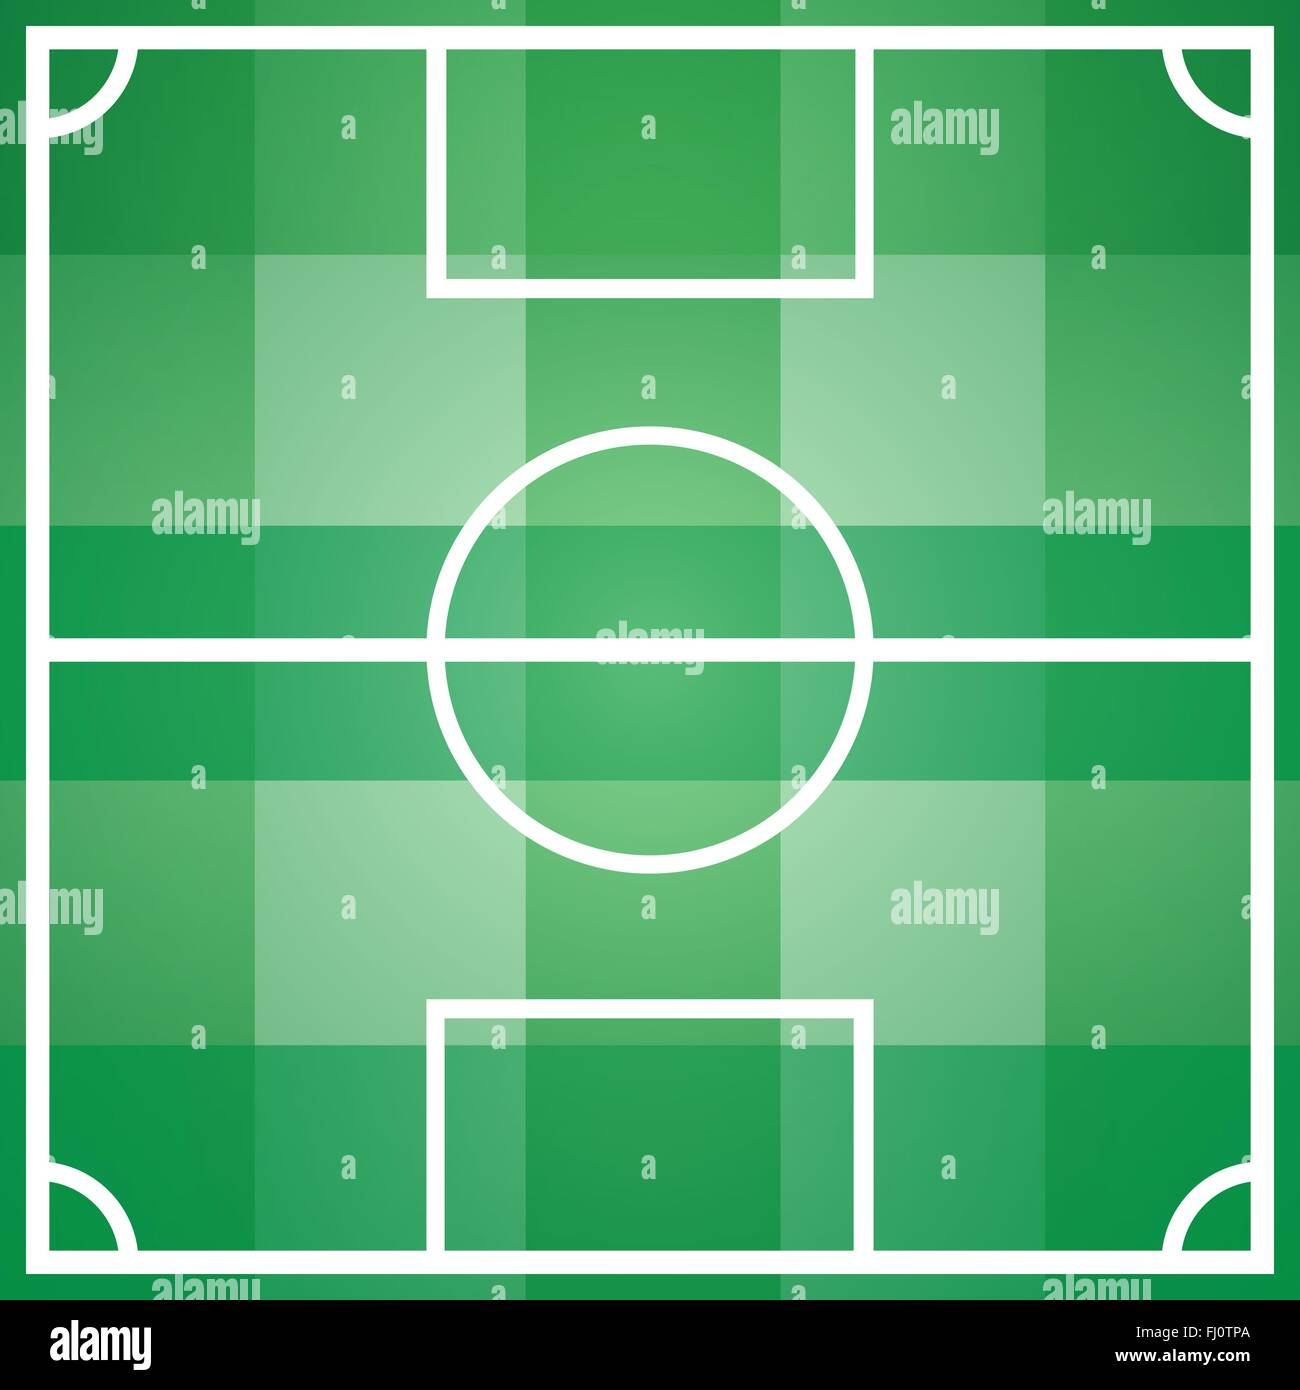 Soccer Football Game Field Template With All Main Parts Outdoor